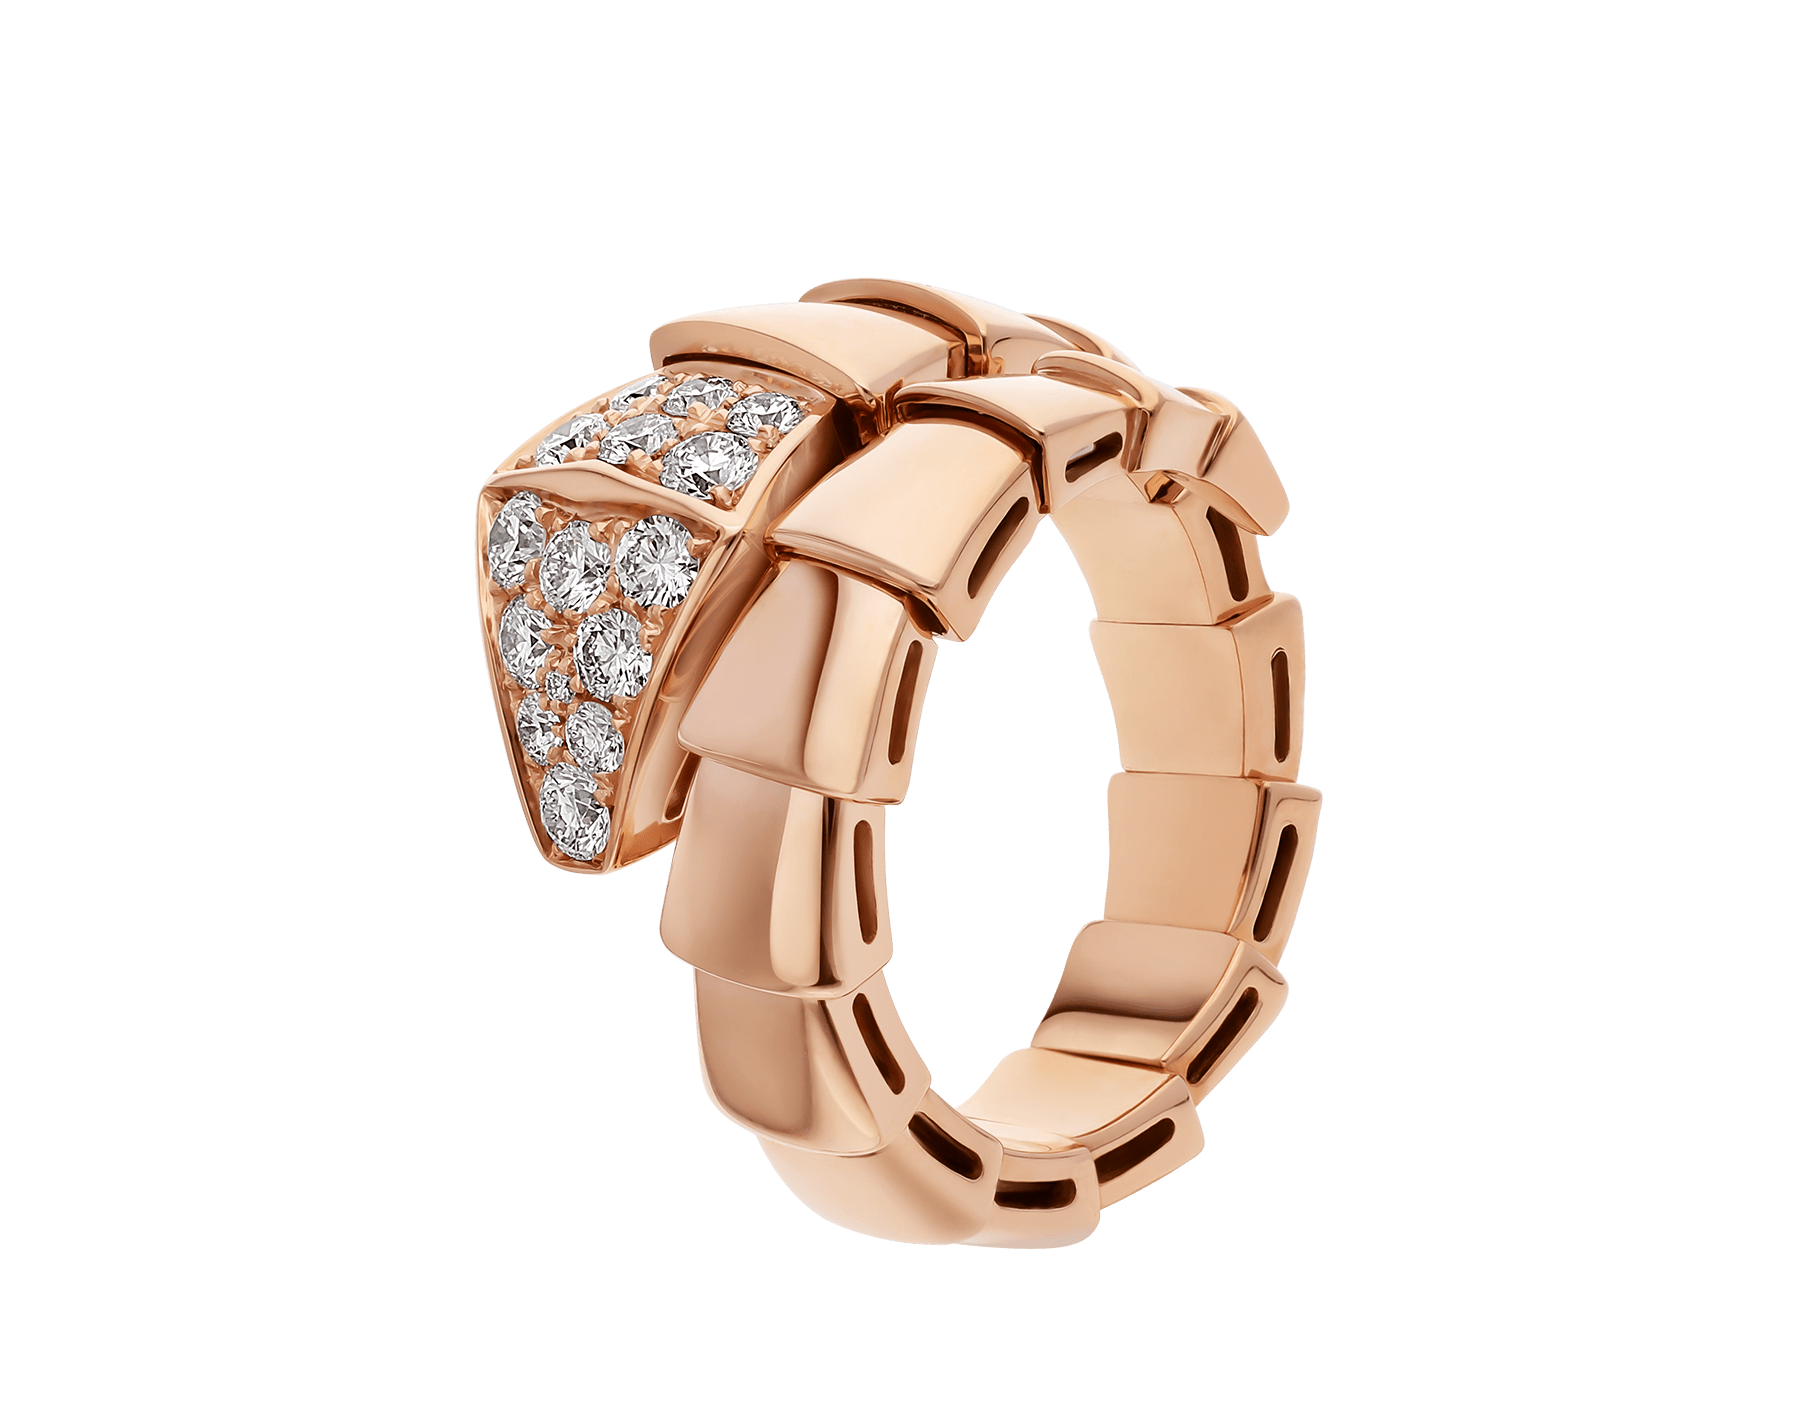 Serpenti one-coil ring in 18 kt rose gold, set with pavé diamonds on the head. AN855318 image 1